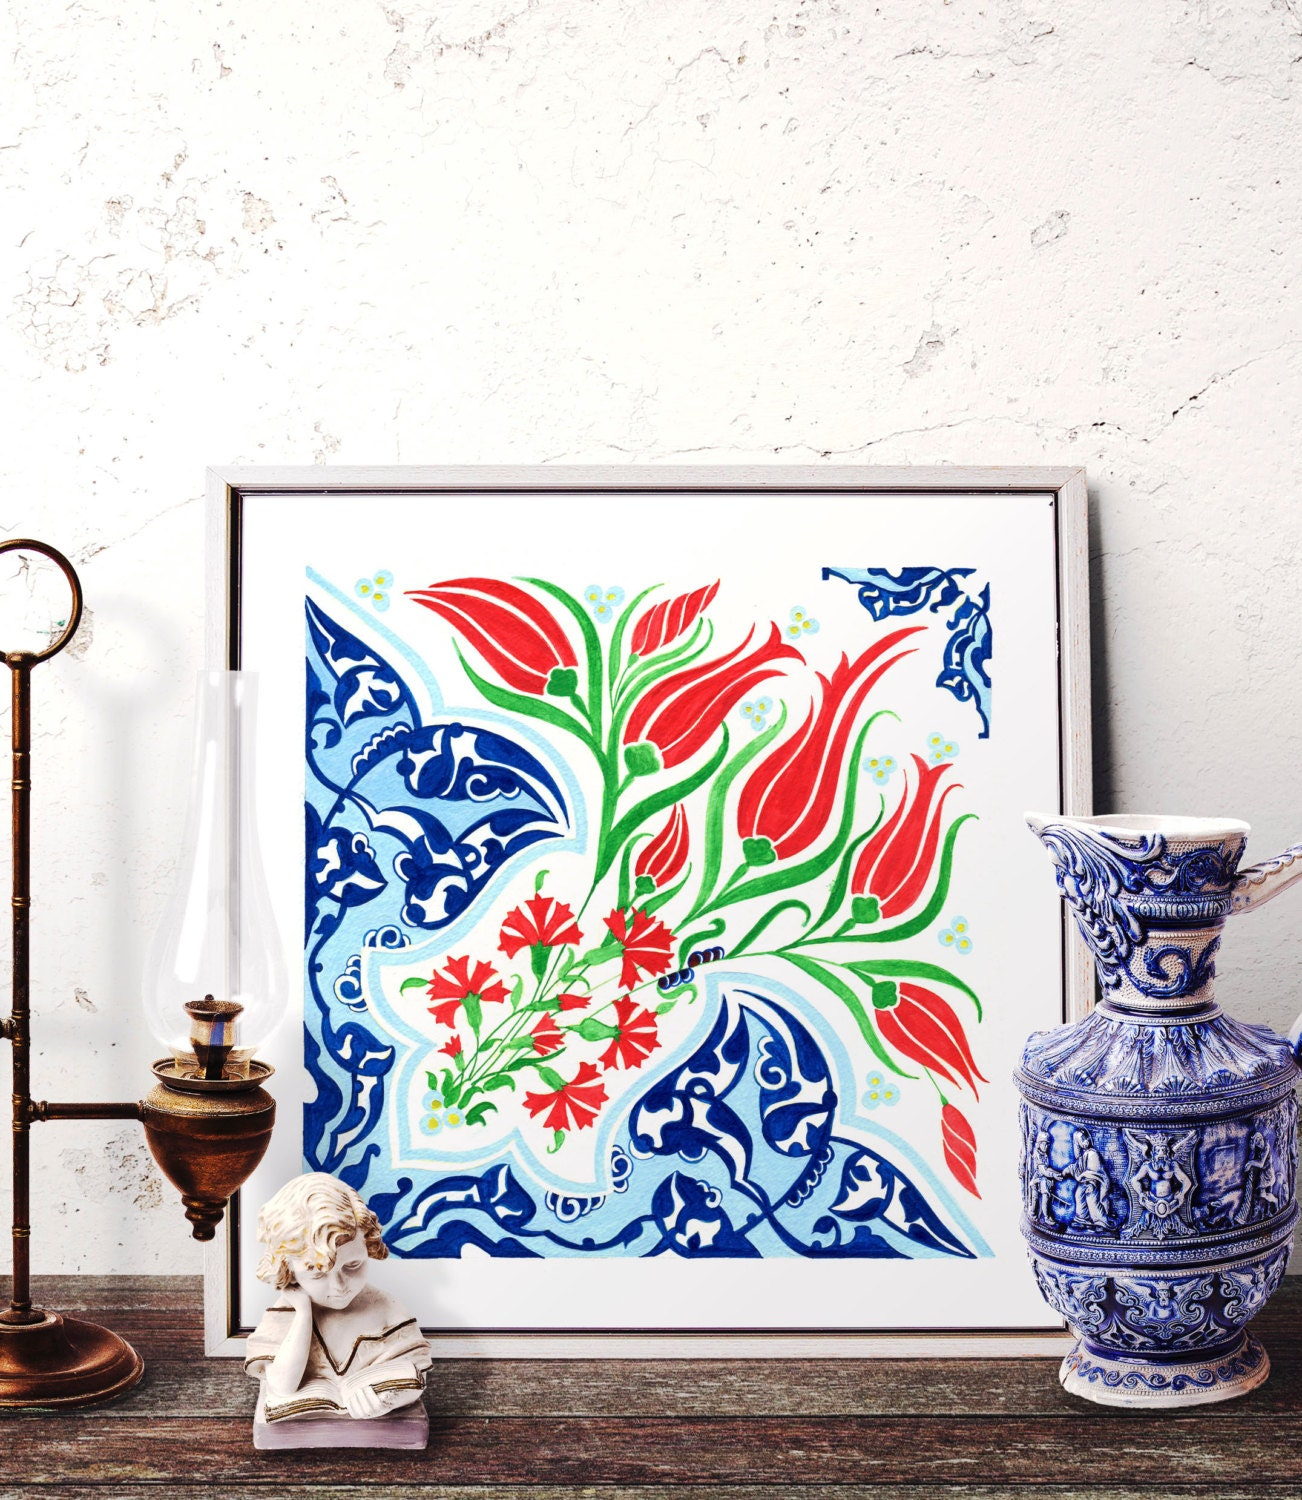 Traditional Turkish Ottoman Red Flower Home Decor Mosaic: Tulip Watercolor Painting Wall Art Ottoman Blue And Red